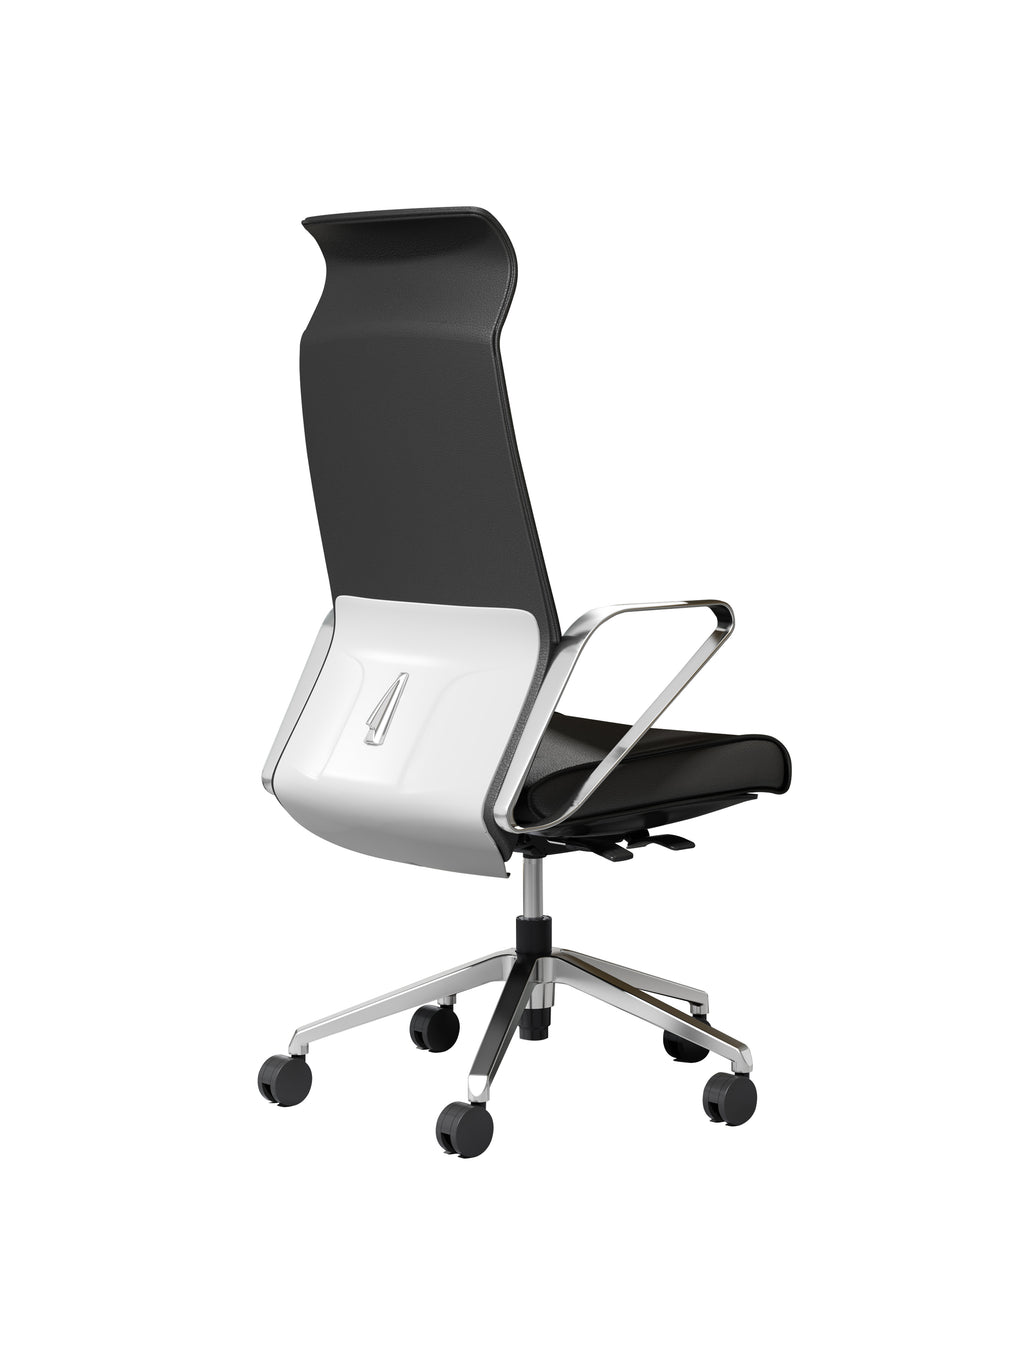 Dustin™ Leather Chair - High Back Support - KiPP